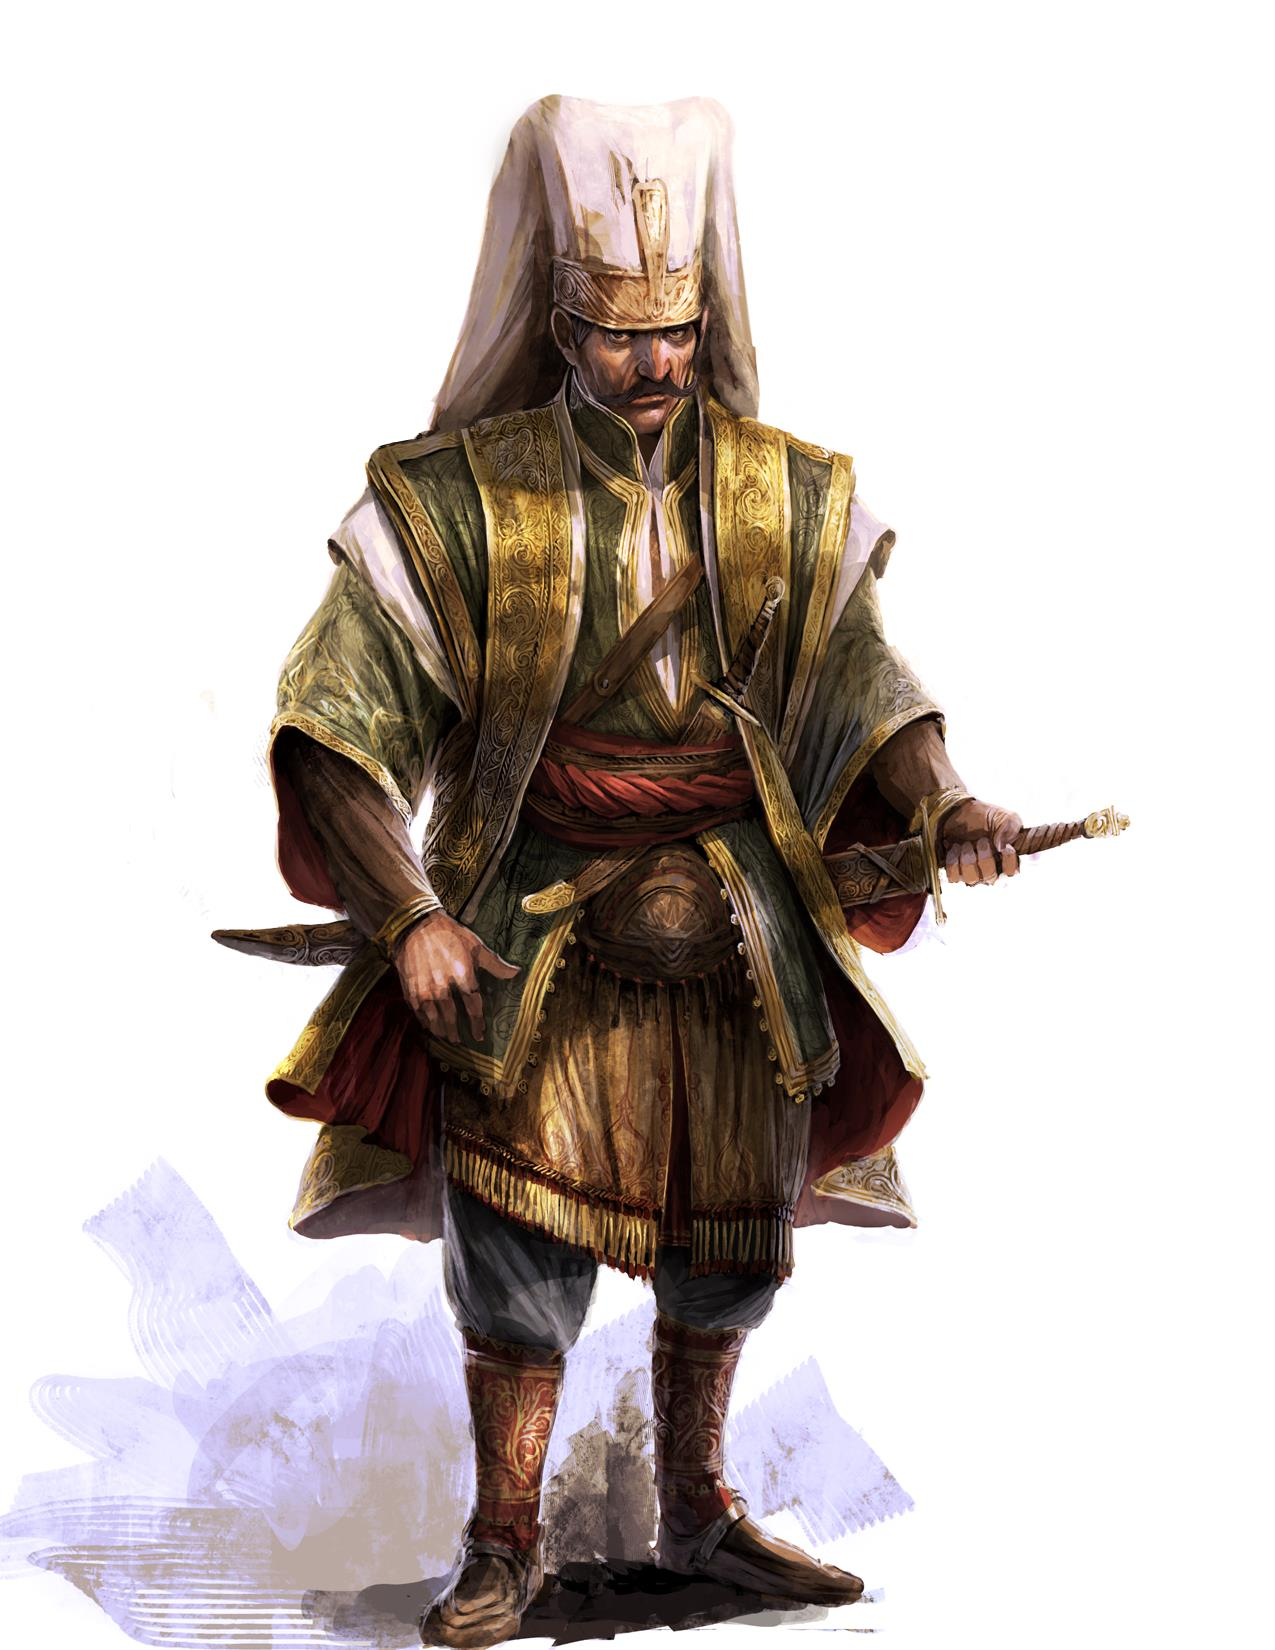 Janissary armor and equipment skyrim mod requests the nexus forums - Ottoman empire assassins creed ...